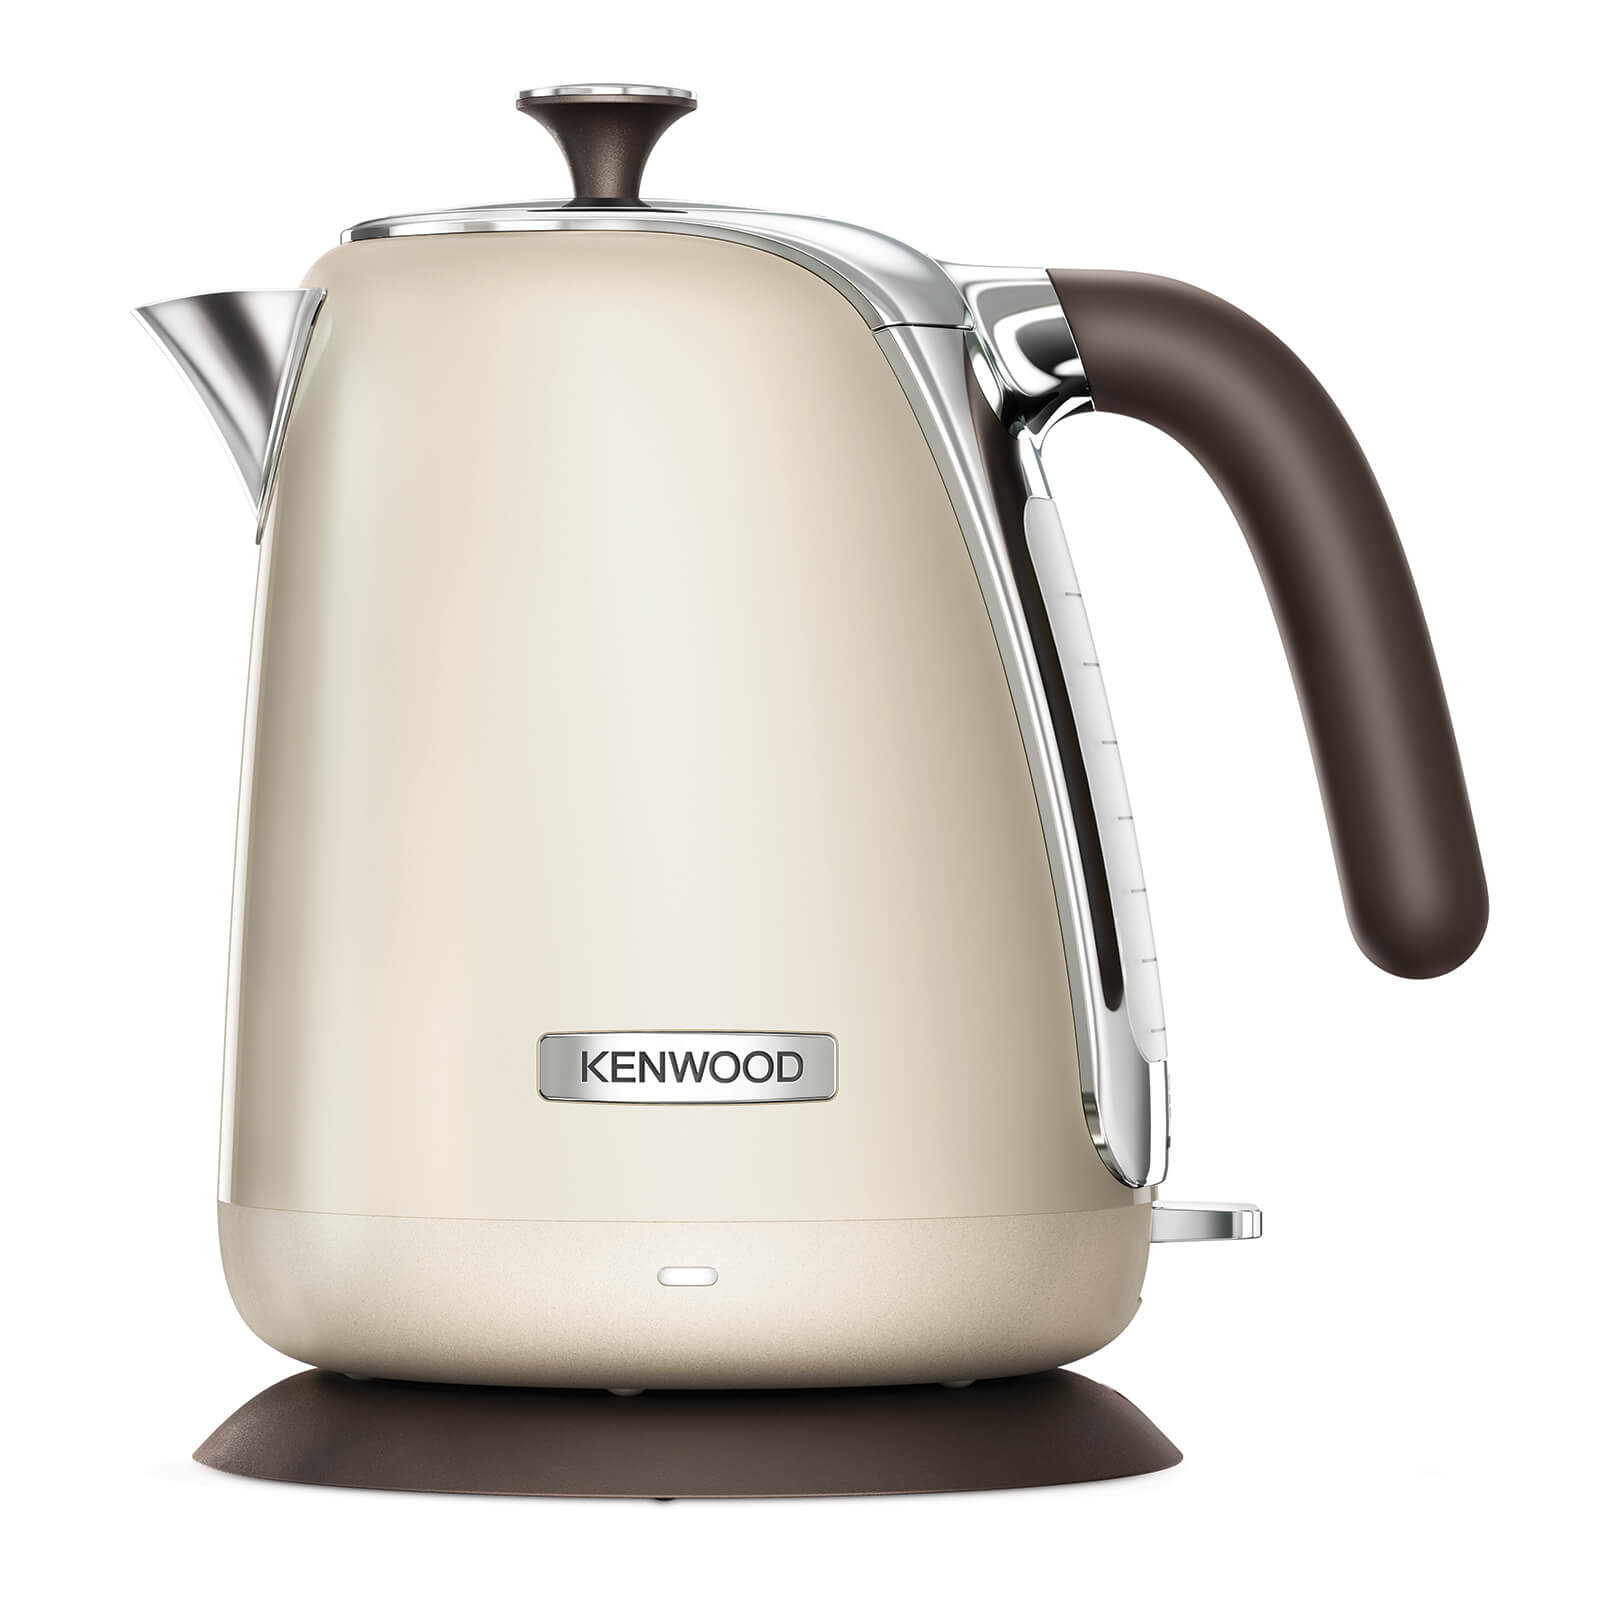 Kenwood ZJM300CR Turbo 1.7L Kettle - Cream